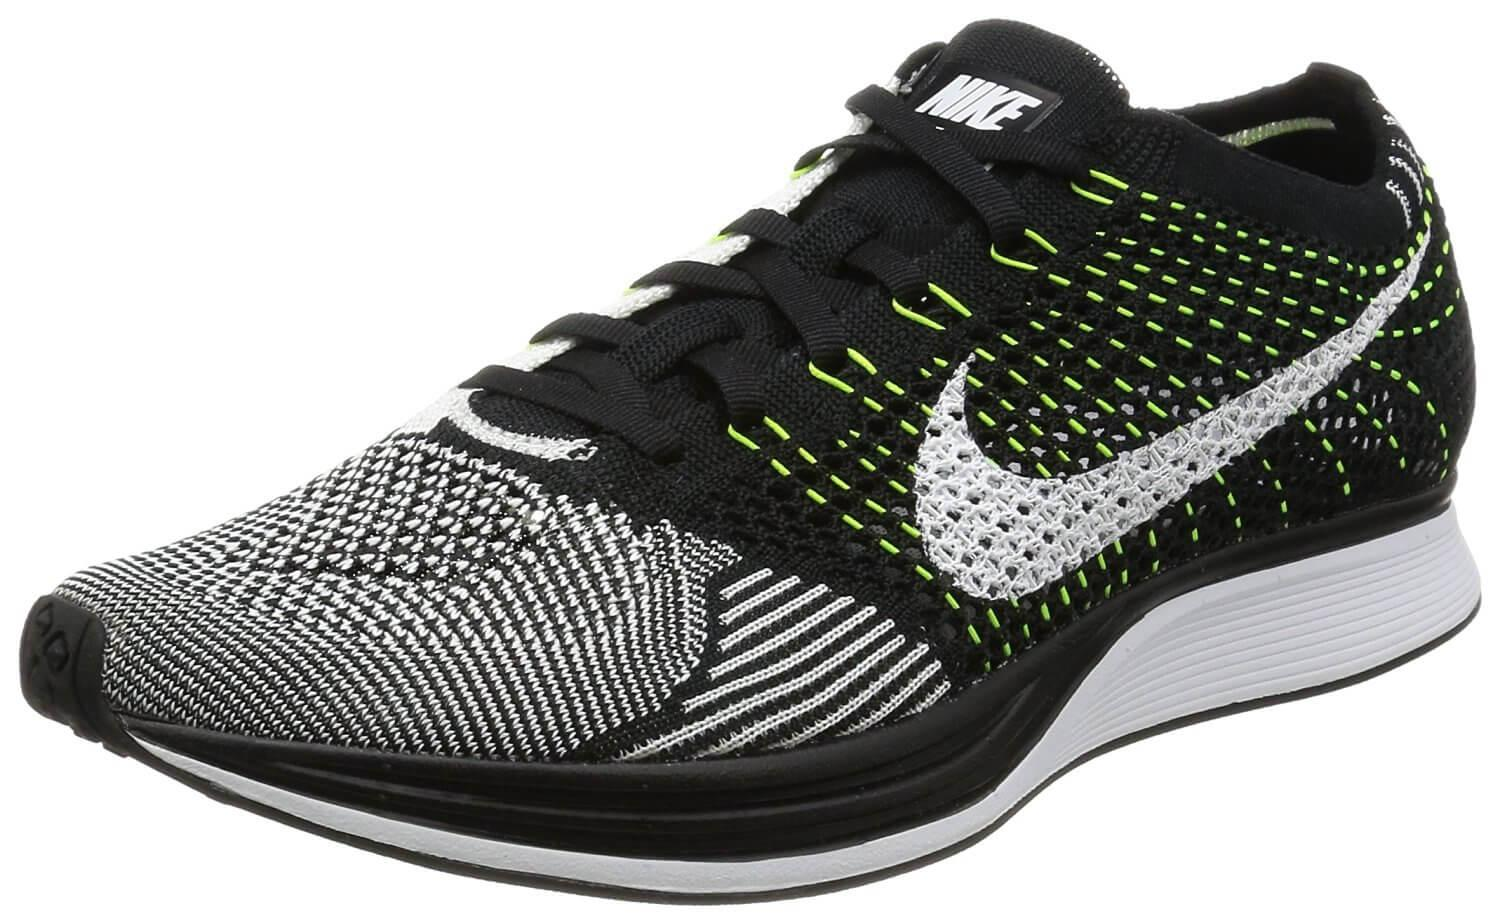 b9ff9c5ca44c Nike Flyknit Racer Reviewed - To Buy or Not in Apr 2019